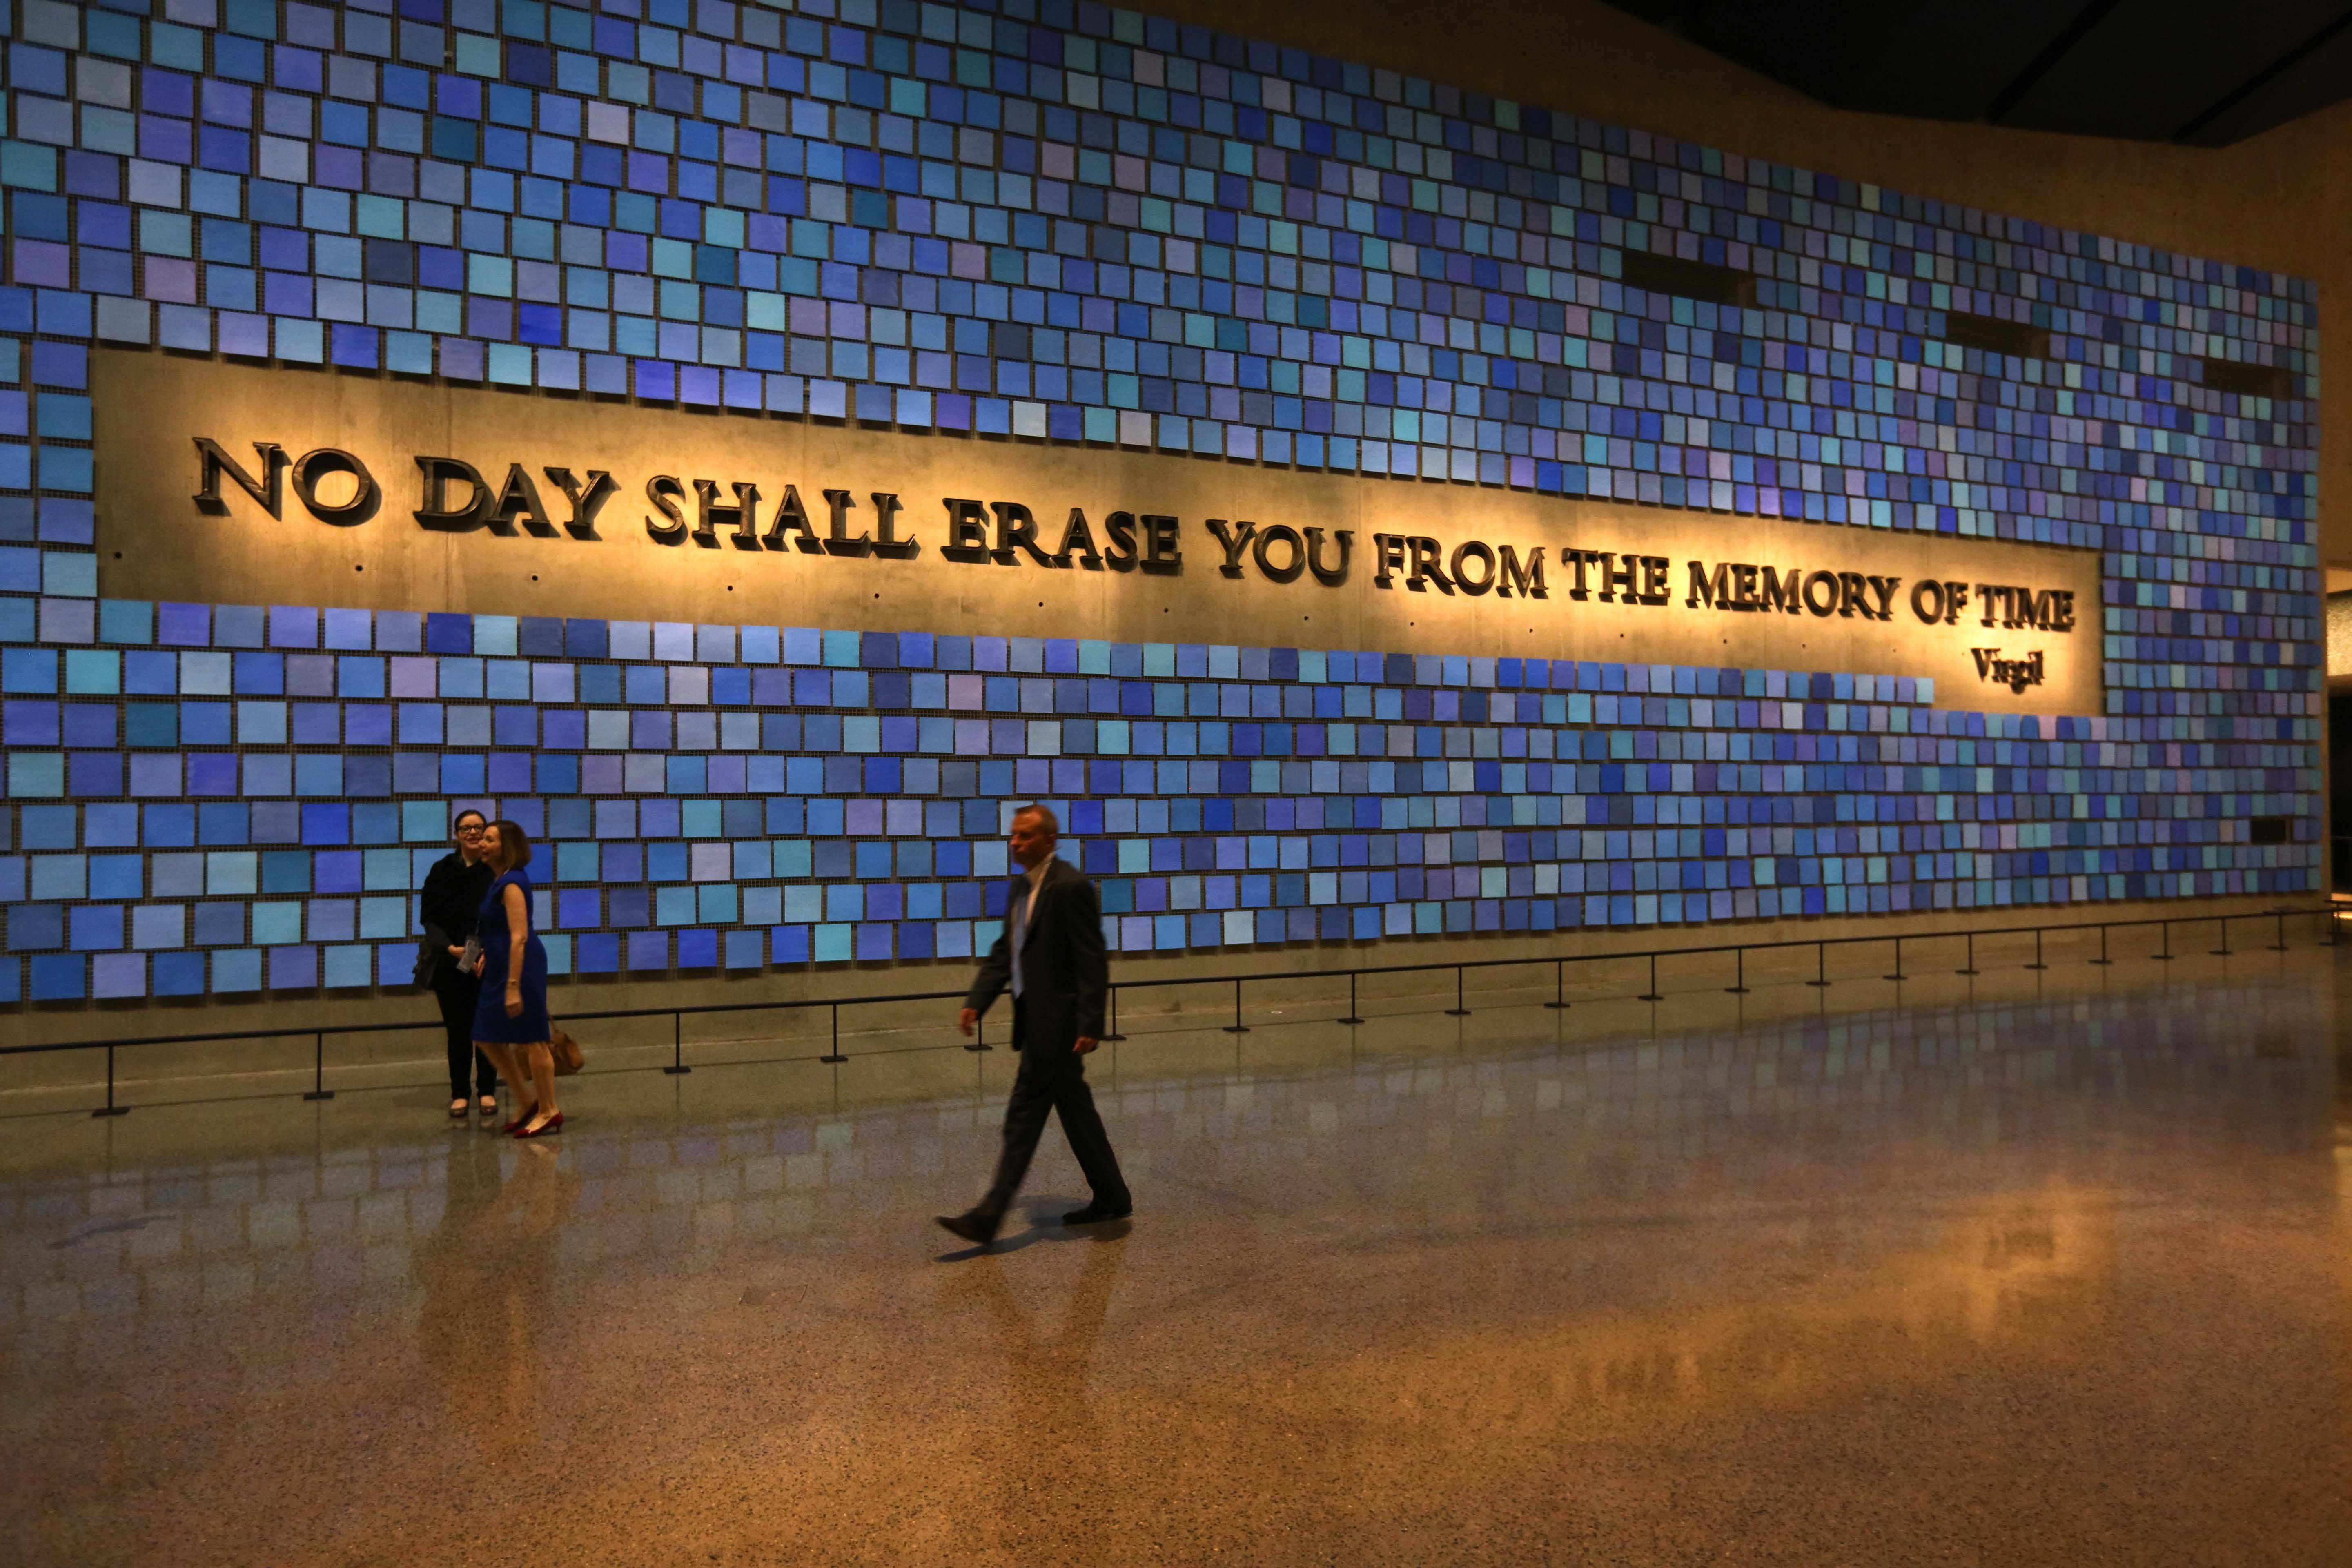 A quote from Virgil fills a wall of the National Sept. 11 Memorial Museum in New York. The museum was designed with the psychological well-being of the public in mind.